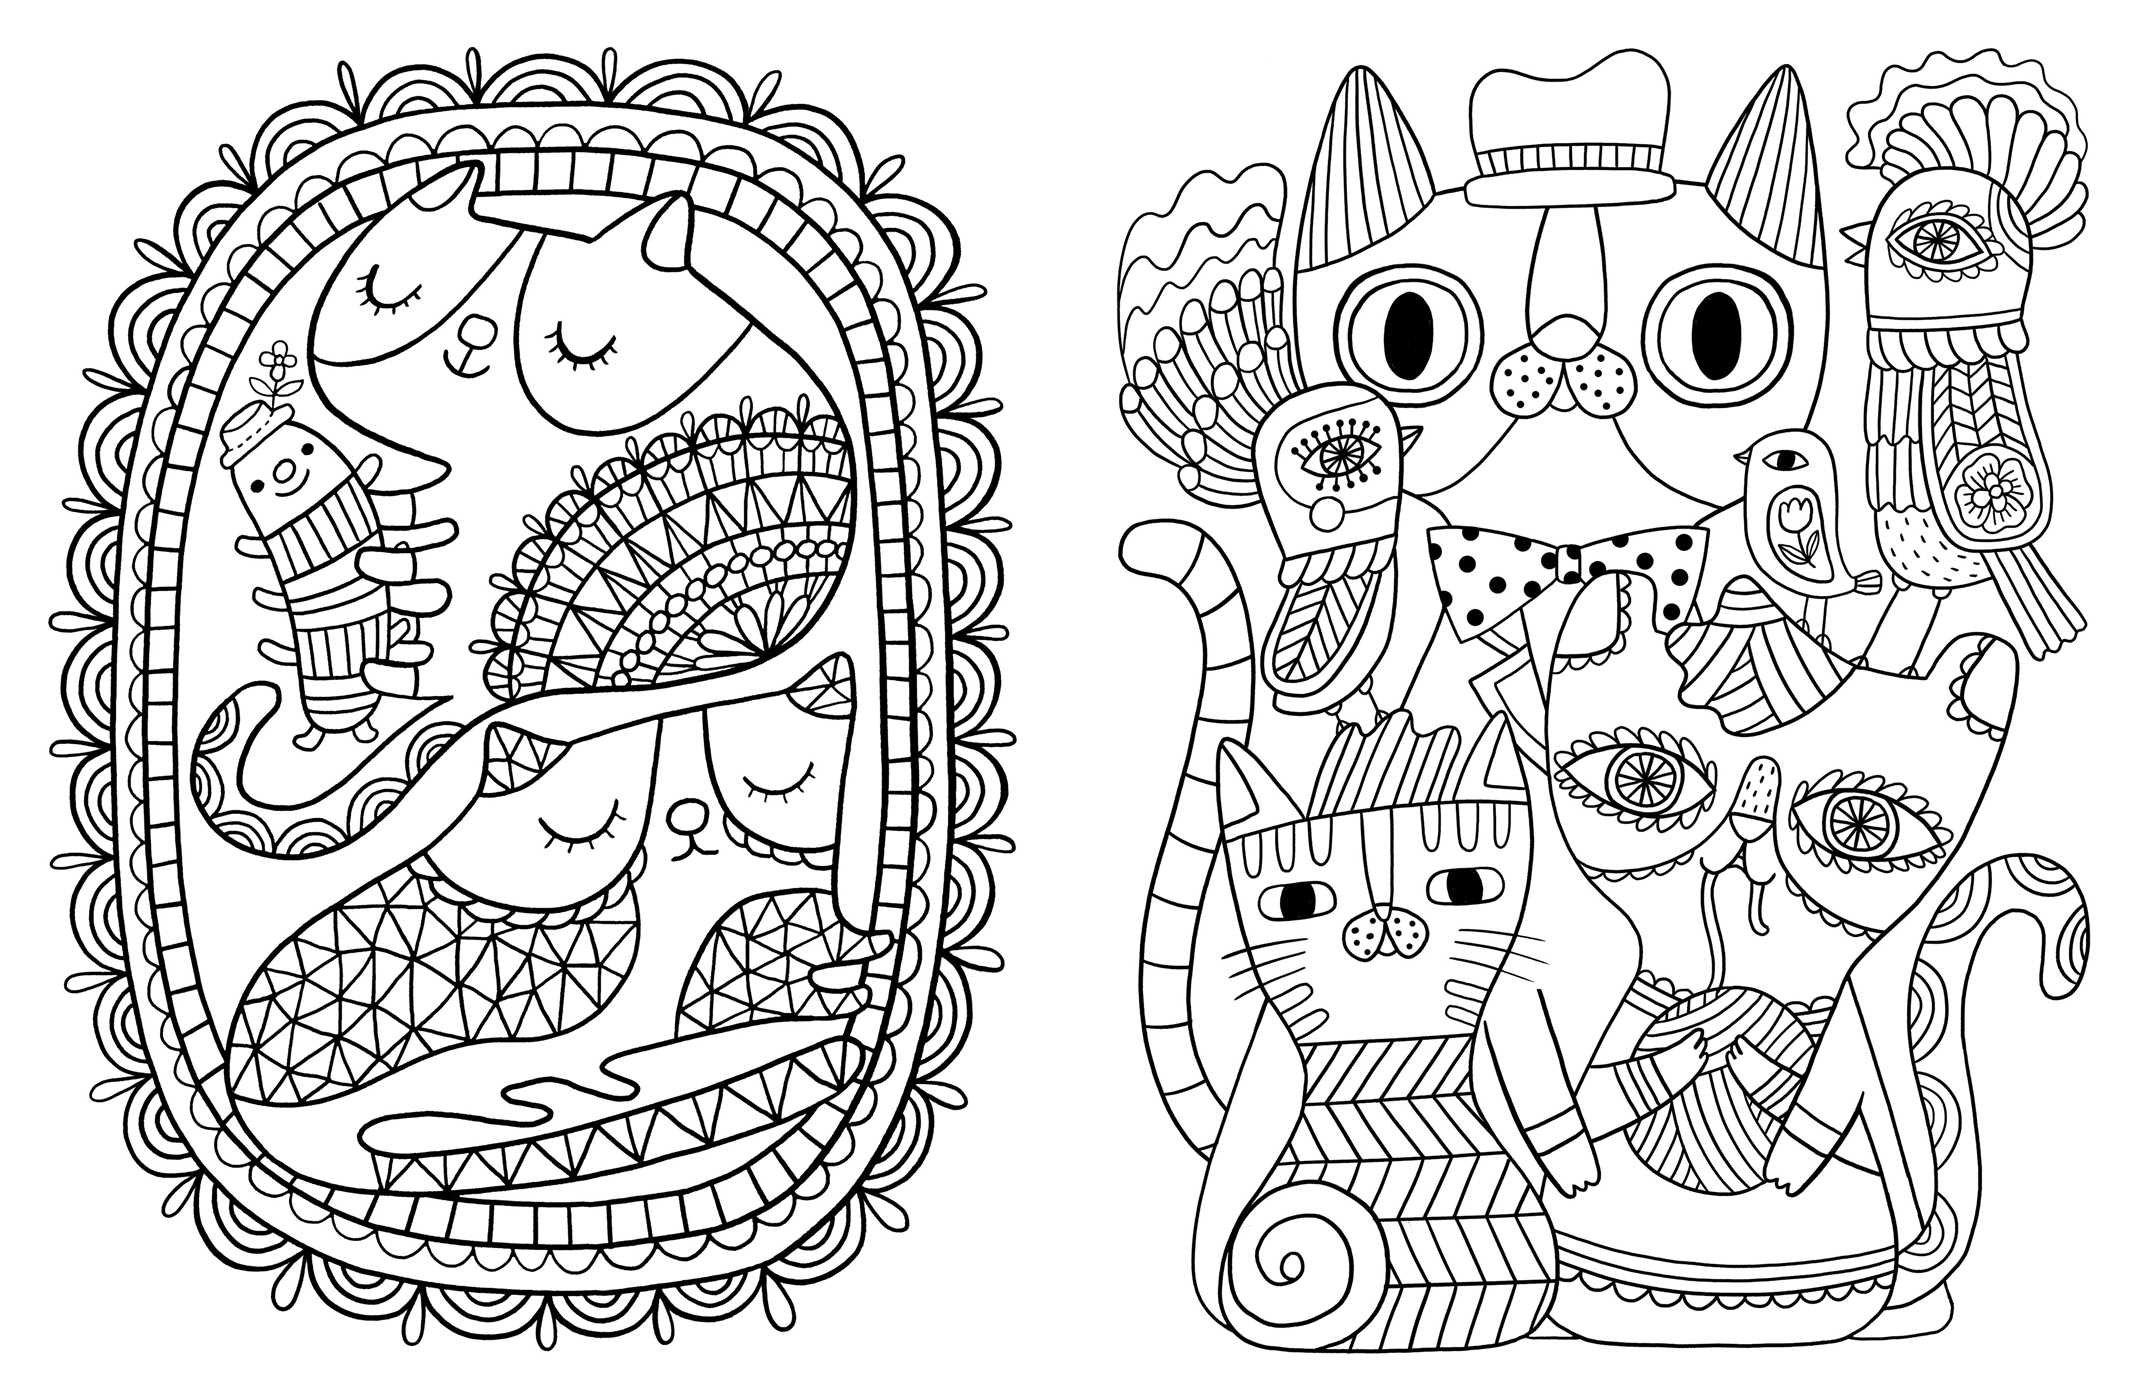 Amazoncom Posh Adult Coloring Book Cats Kittens for Comfort